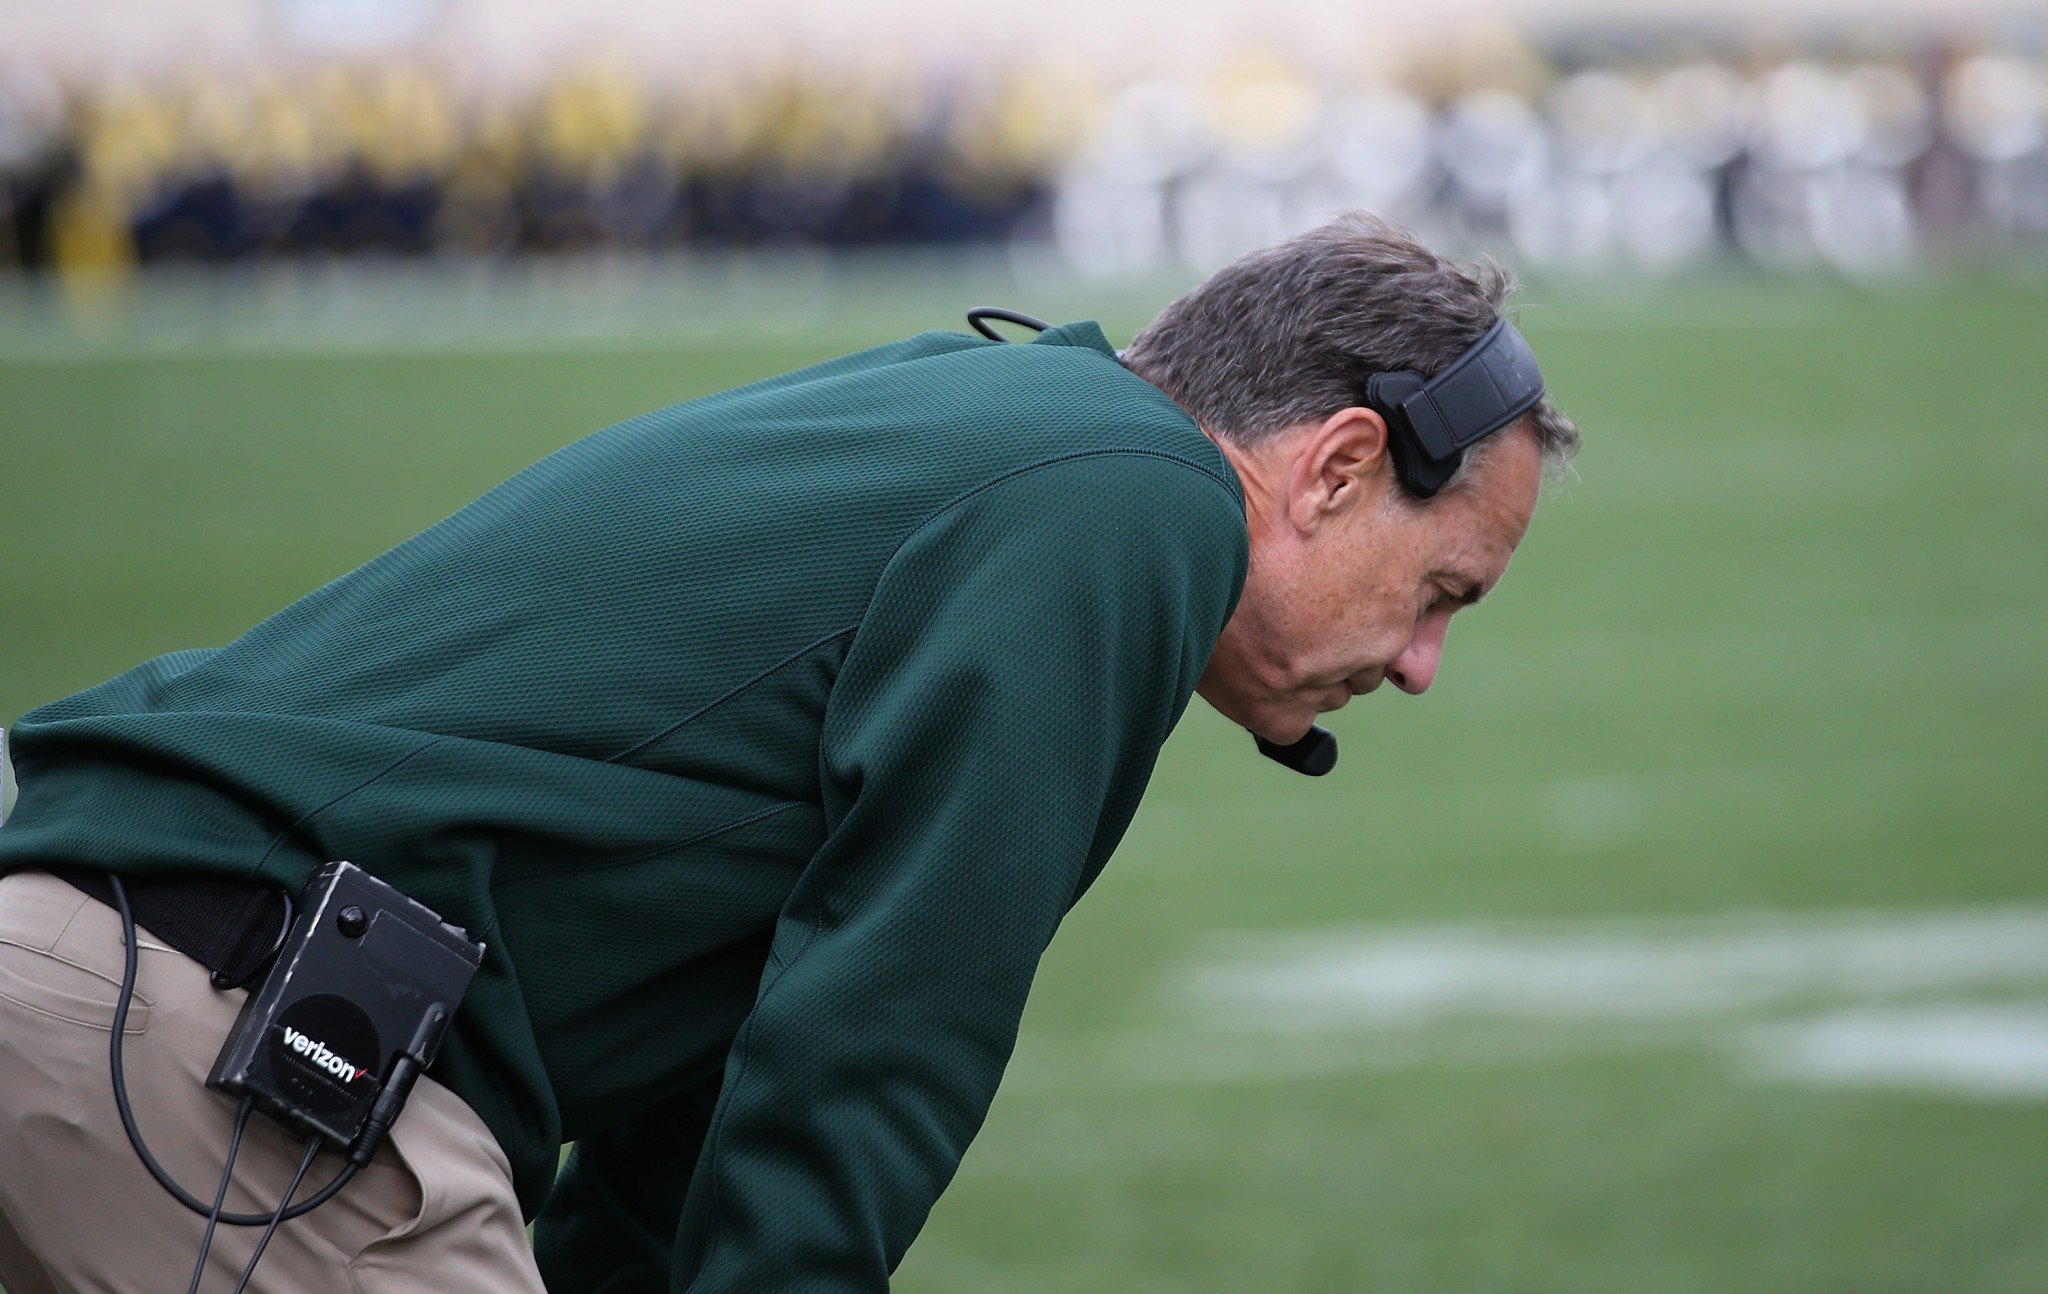 Mark Dantonio is suffering his first losing season at Michigan State since 2009. (Getty Images)